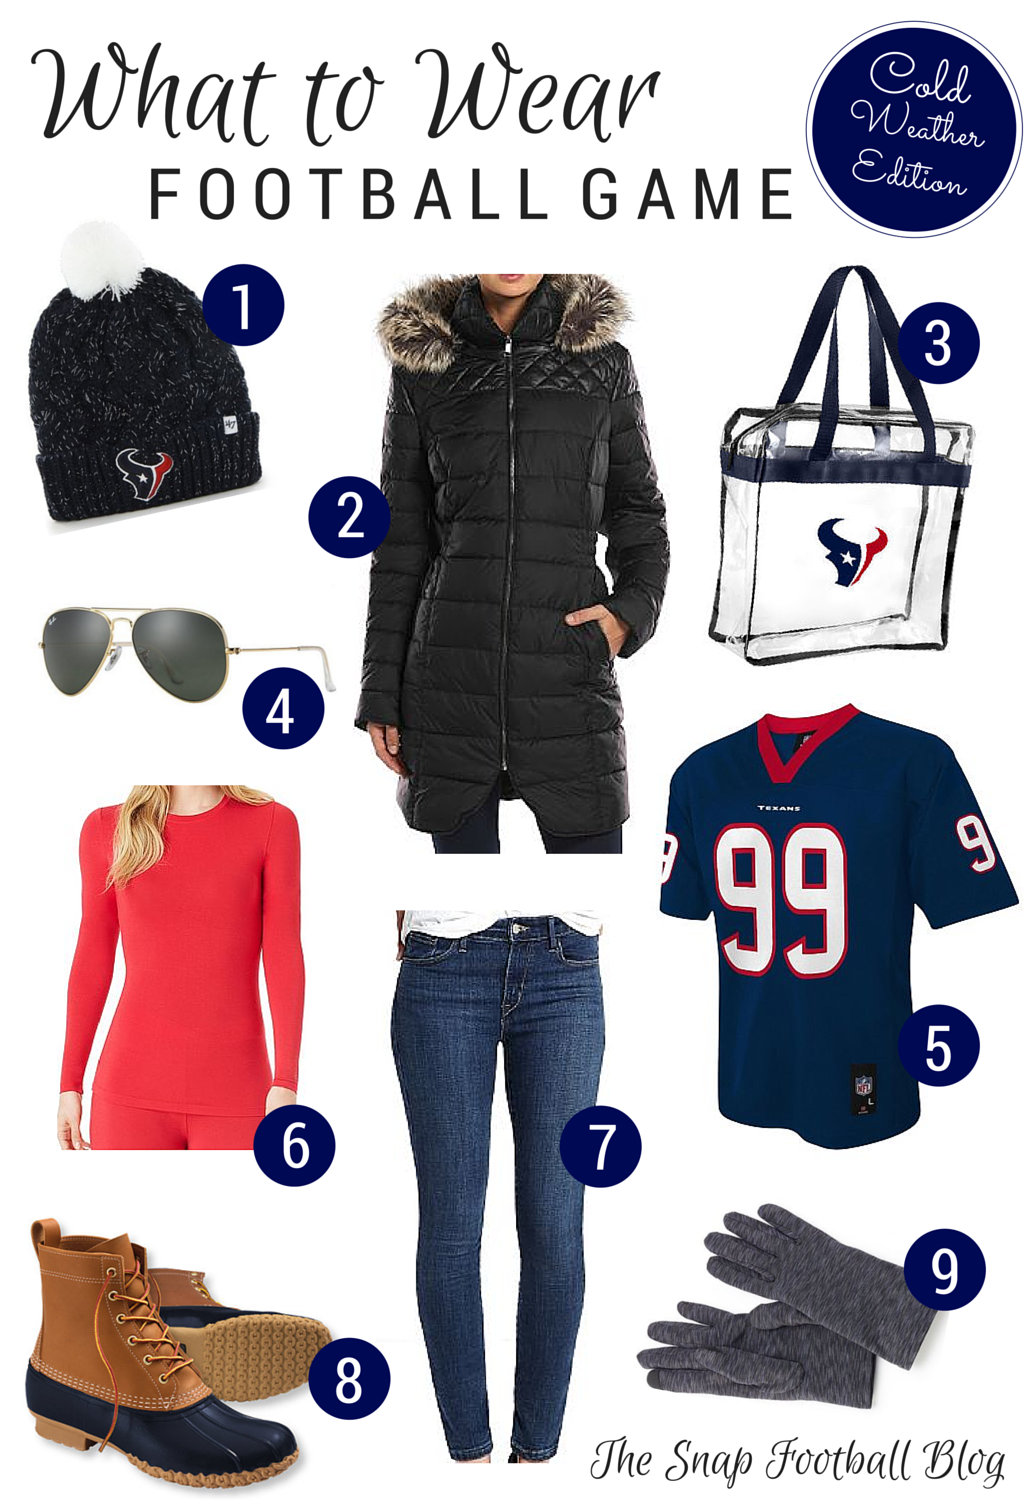 4e6c1c305eb Scrolling through Pinterest one day, I came across a guide of what to wear  to a football game. The guide included boots with 4-inch spike heels.